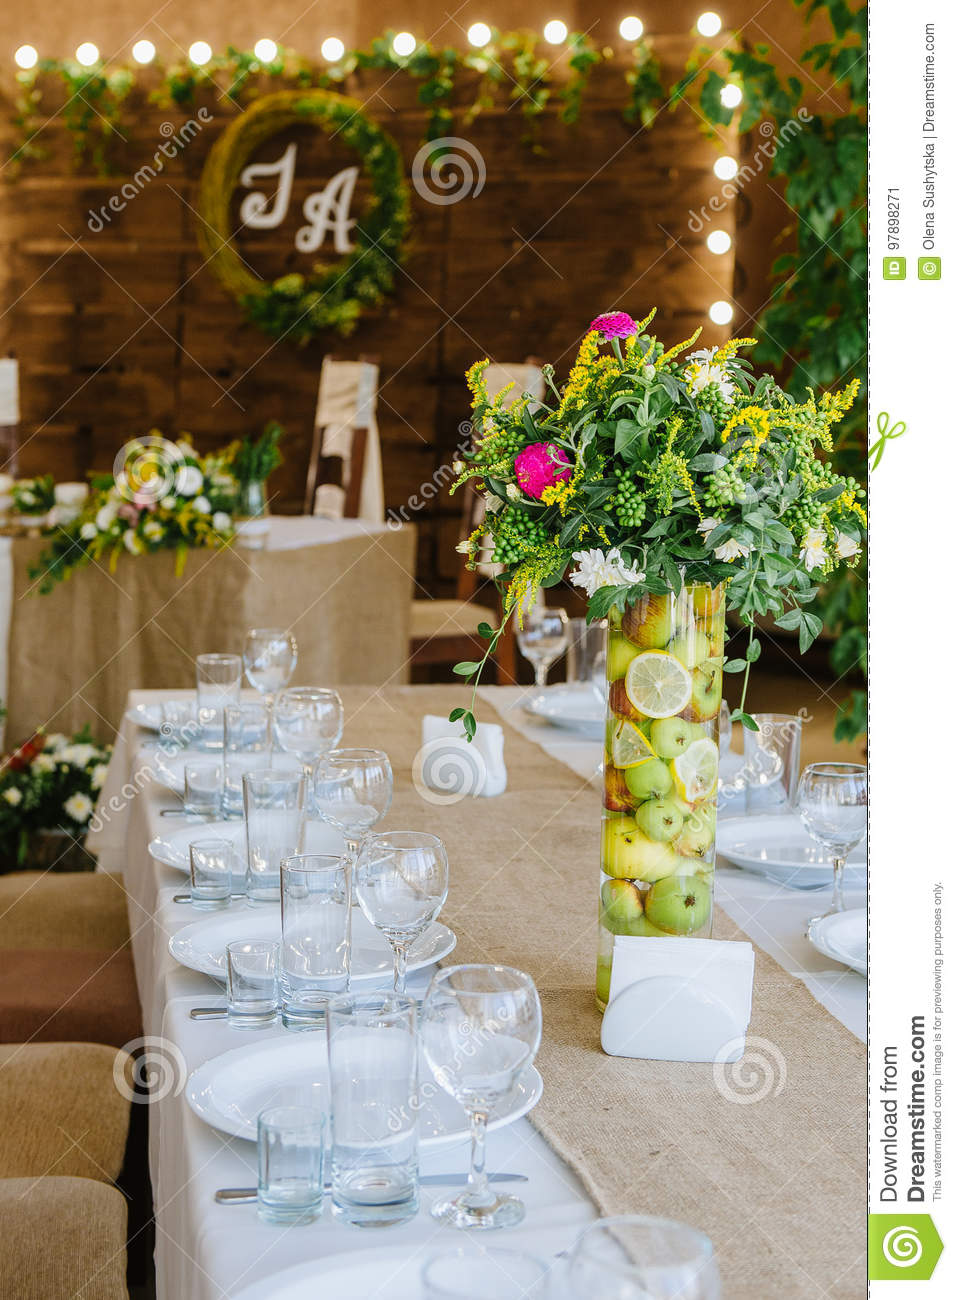 Wedding Reception In Wooden Style Stock Image Image Of Arrangement